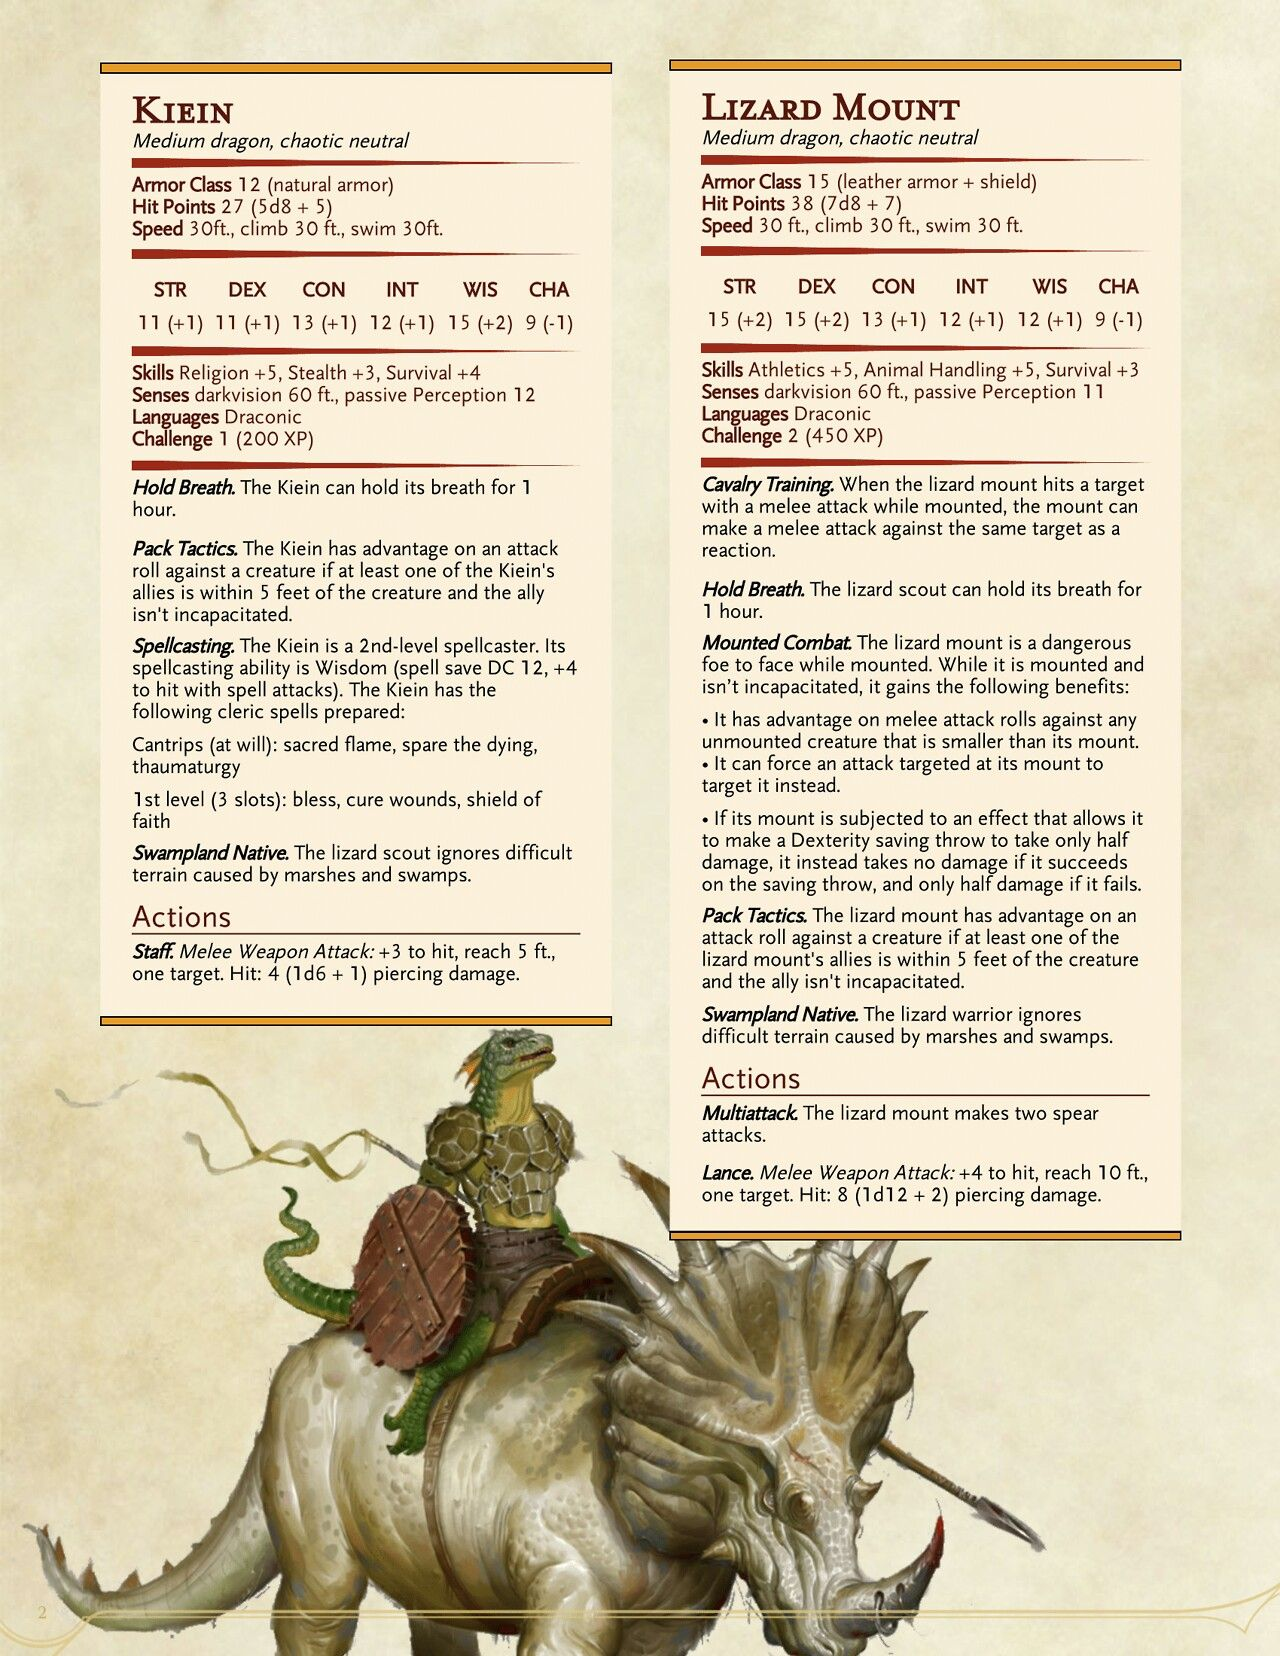 Pin by Sha nally on D&d | Dnd monsters, Dnd dragons